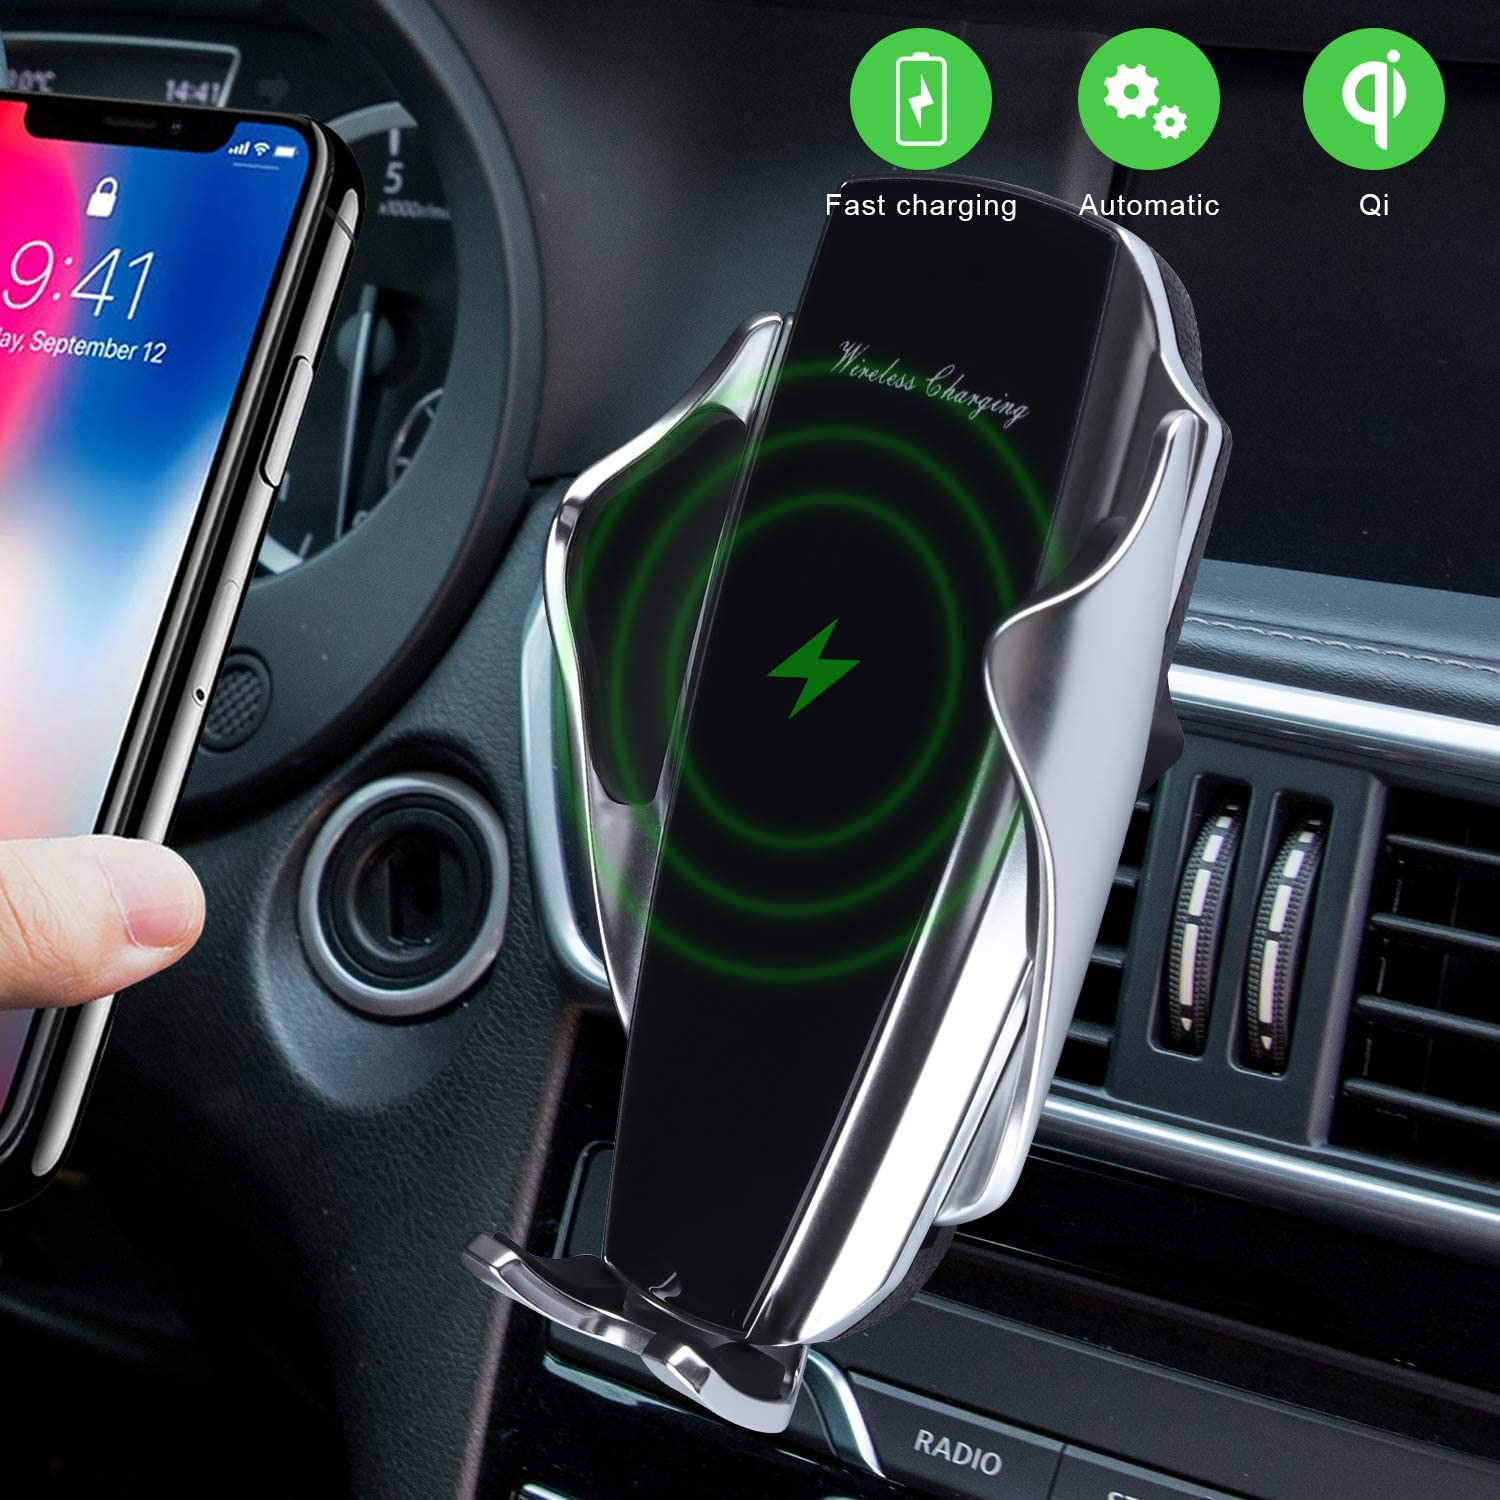 ,Samsung S10//S1 Wireless Car Charger KALENI 10W Qi Fast Charging Auto Clamping Car Mount Windshield Dashboard Air Vent Phone Holder With Touch Sensing Compatible With iPhone 11//11 Pro//11 Pro Max//Xs